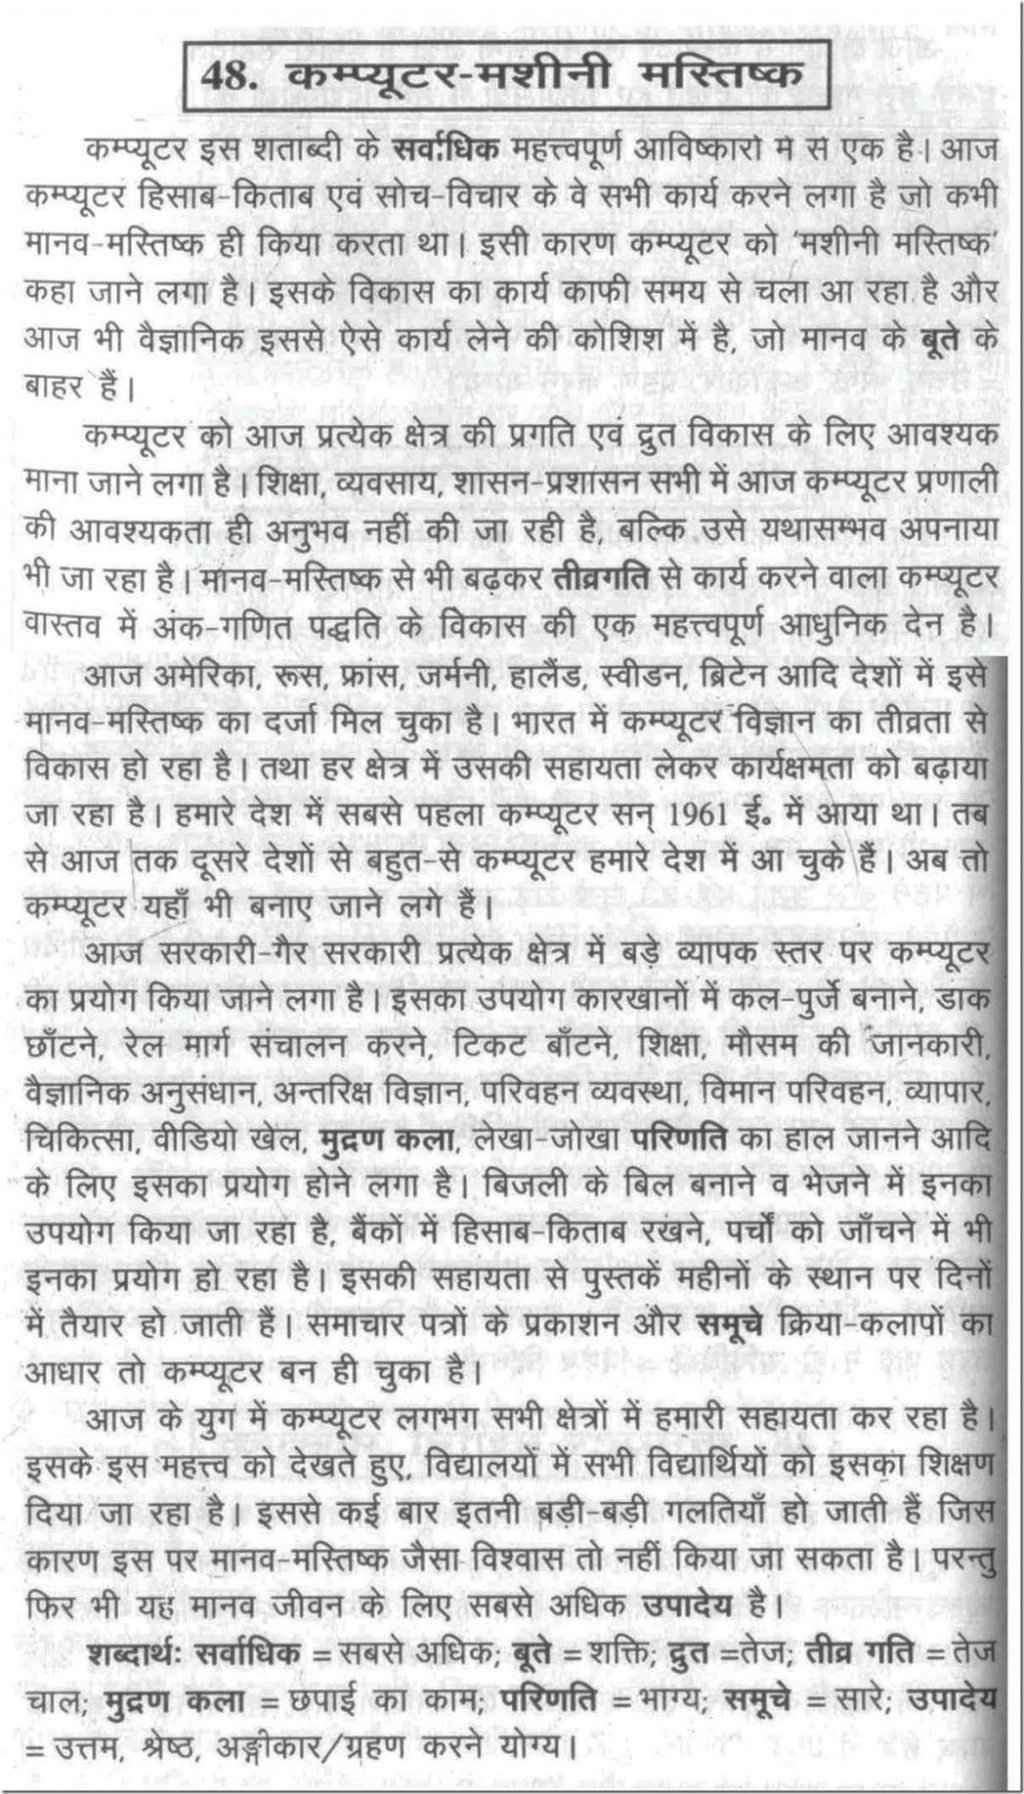 013 Essay Example On Computer Buying Sample Of Argumentative Buy Writing 100048 Fearsome Science In Hindi Urdu Large